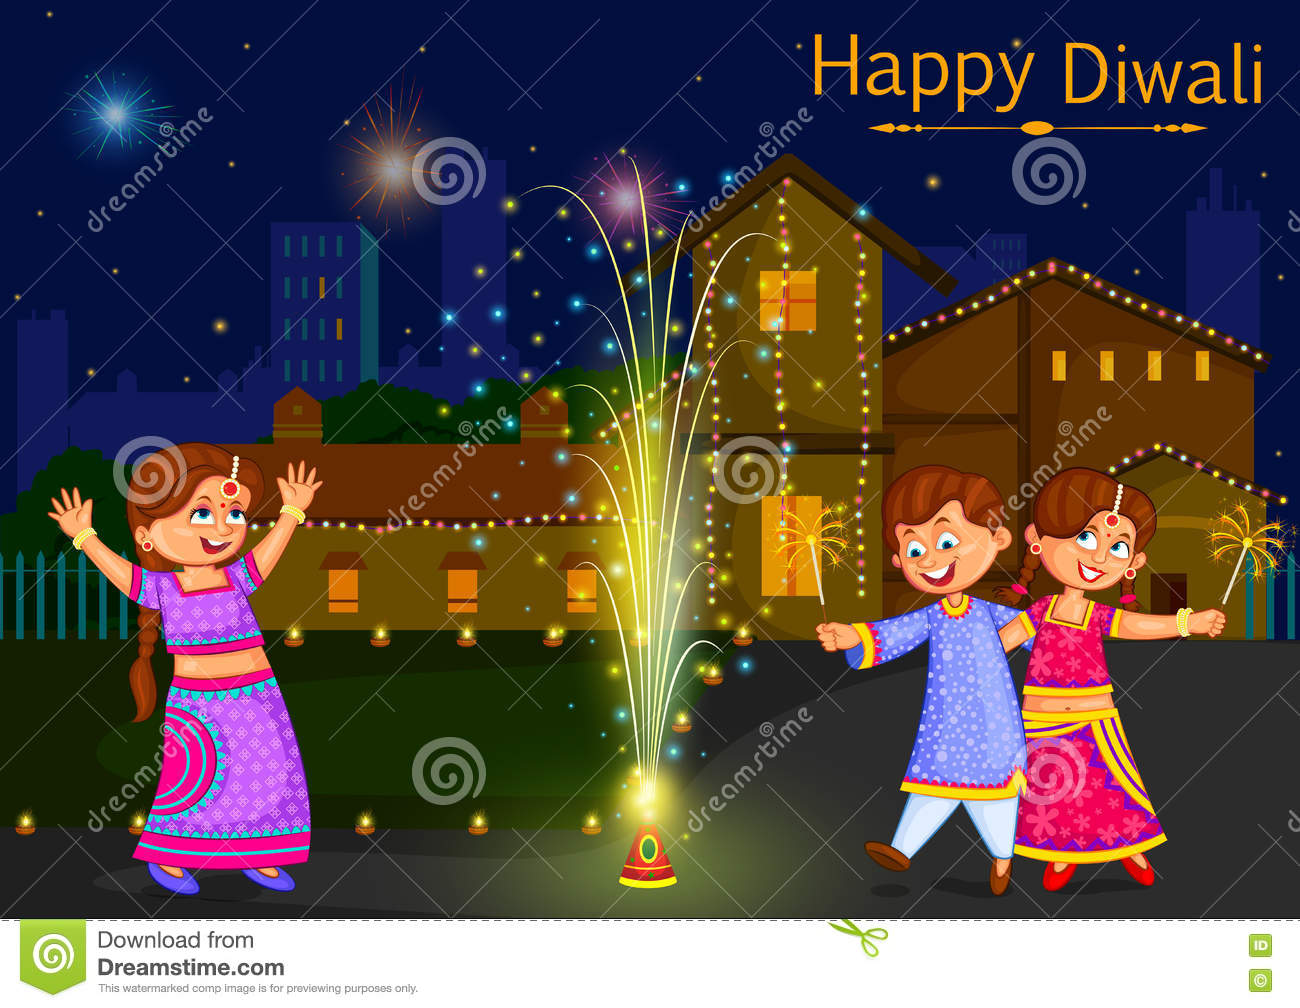 Clipart Images For Diwali.